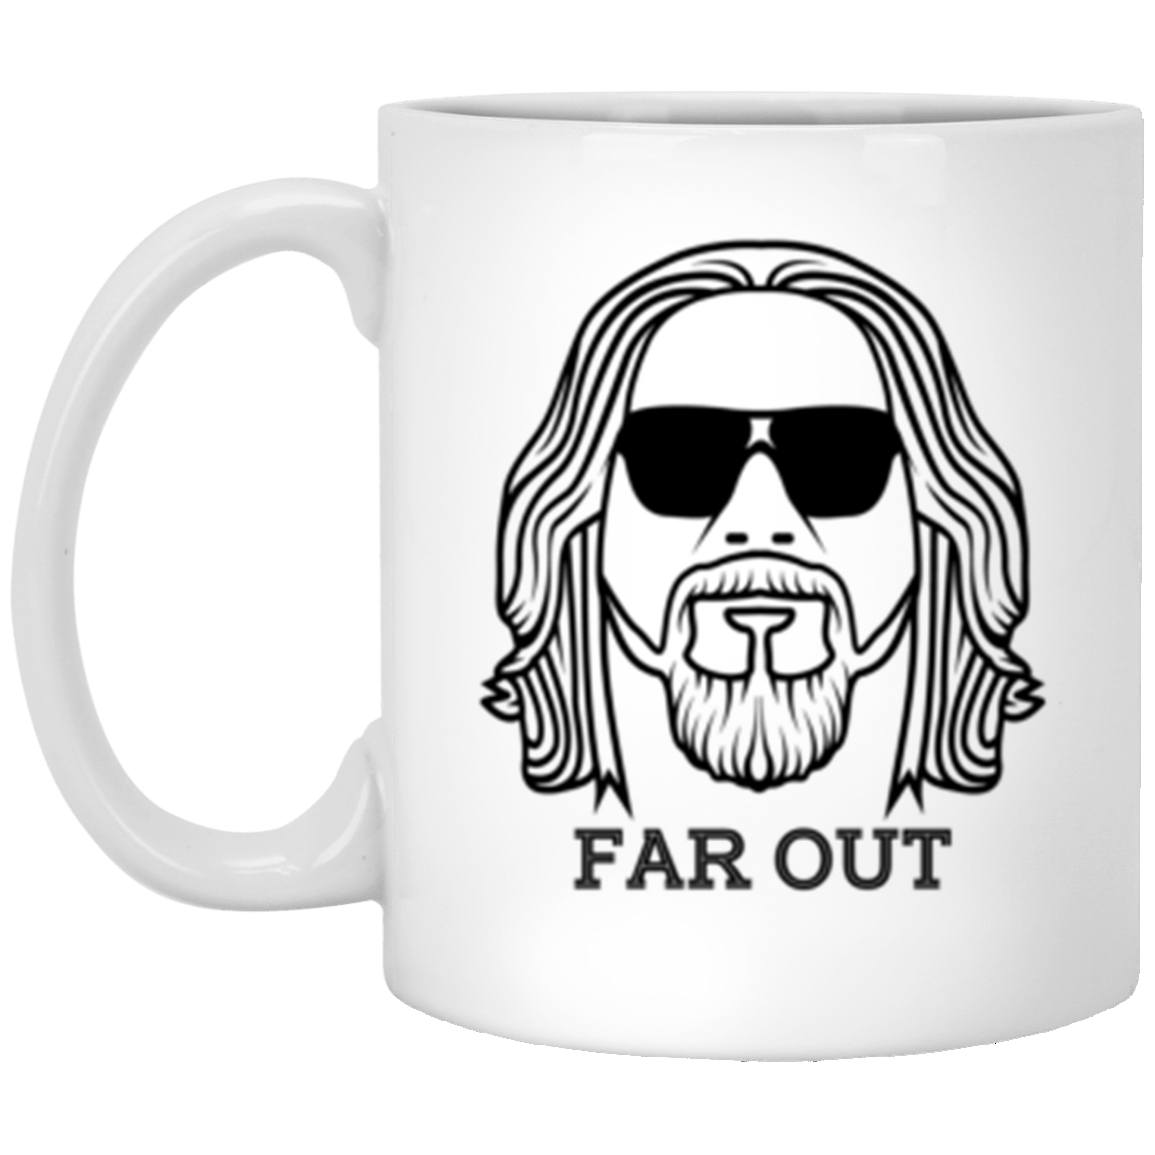 Drinkware - Far Out White Mug 11oz (2-sided)